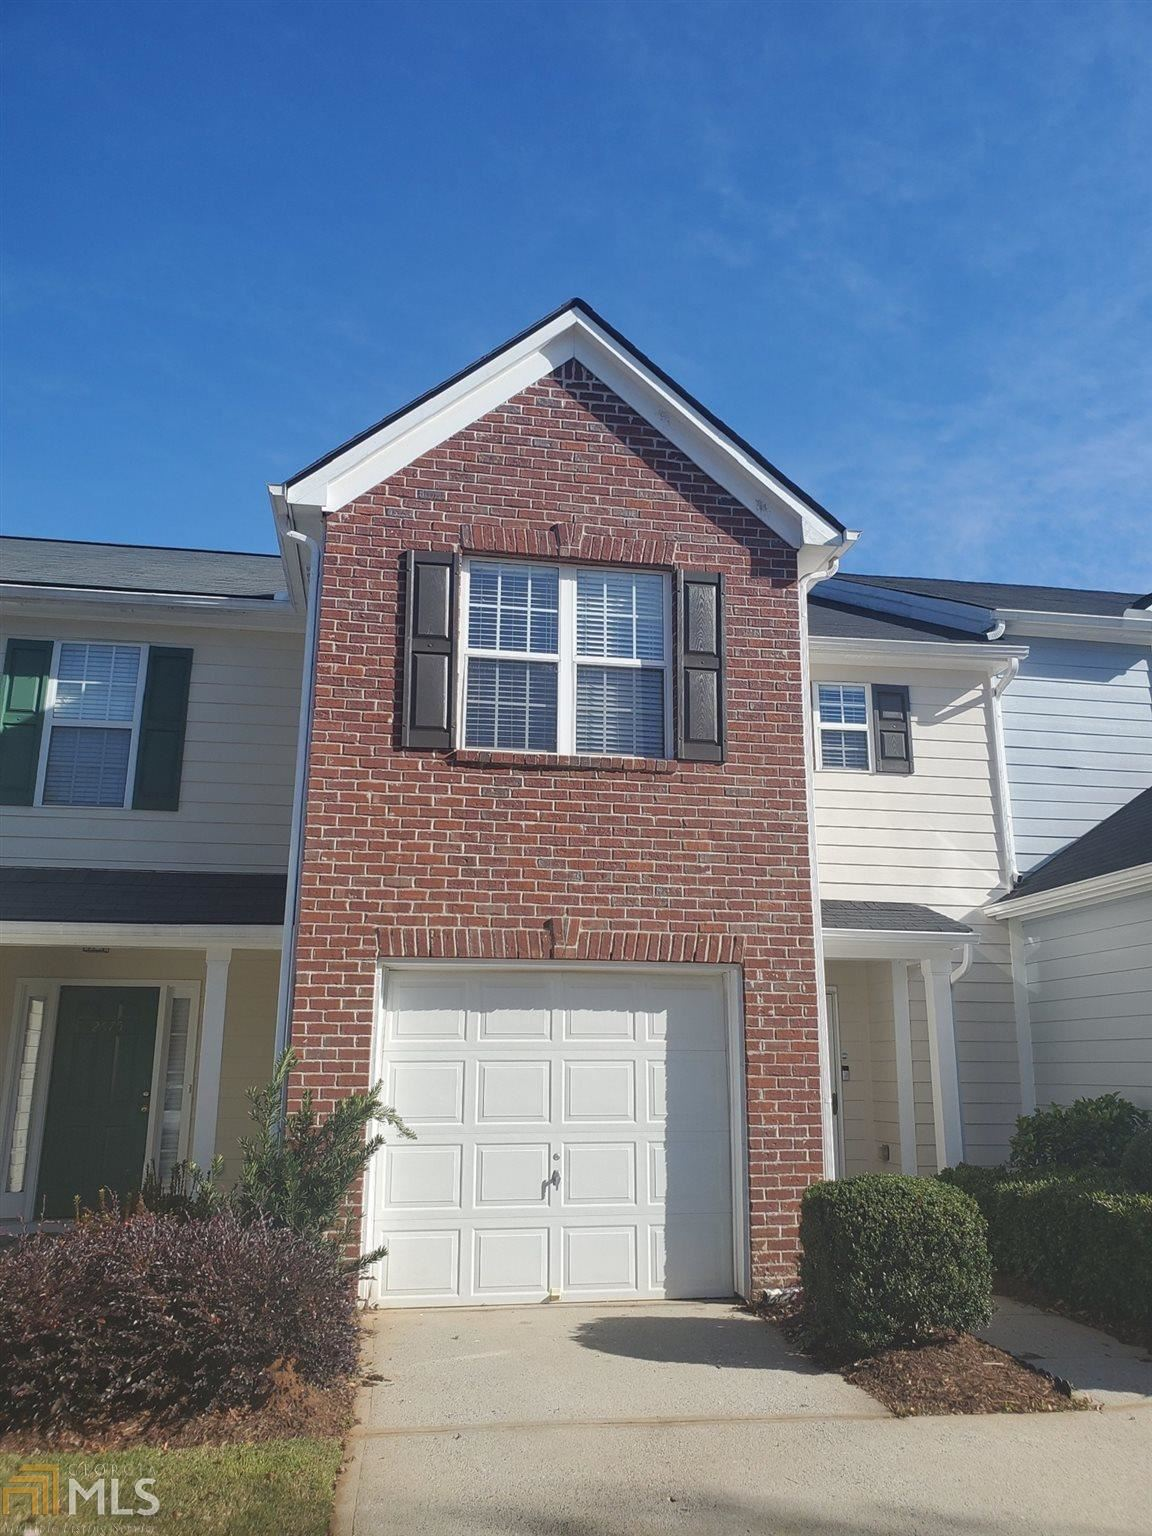 2673 Waverly Hills Dr, Lawrenceville, GA 30044 - MLS#: 8893064